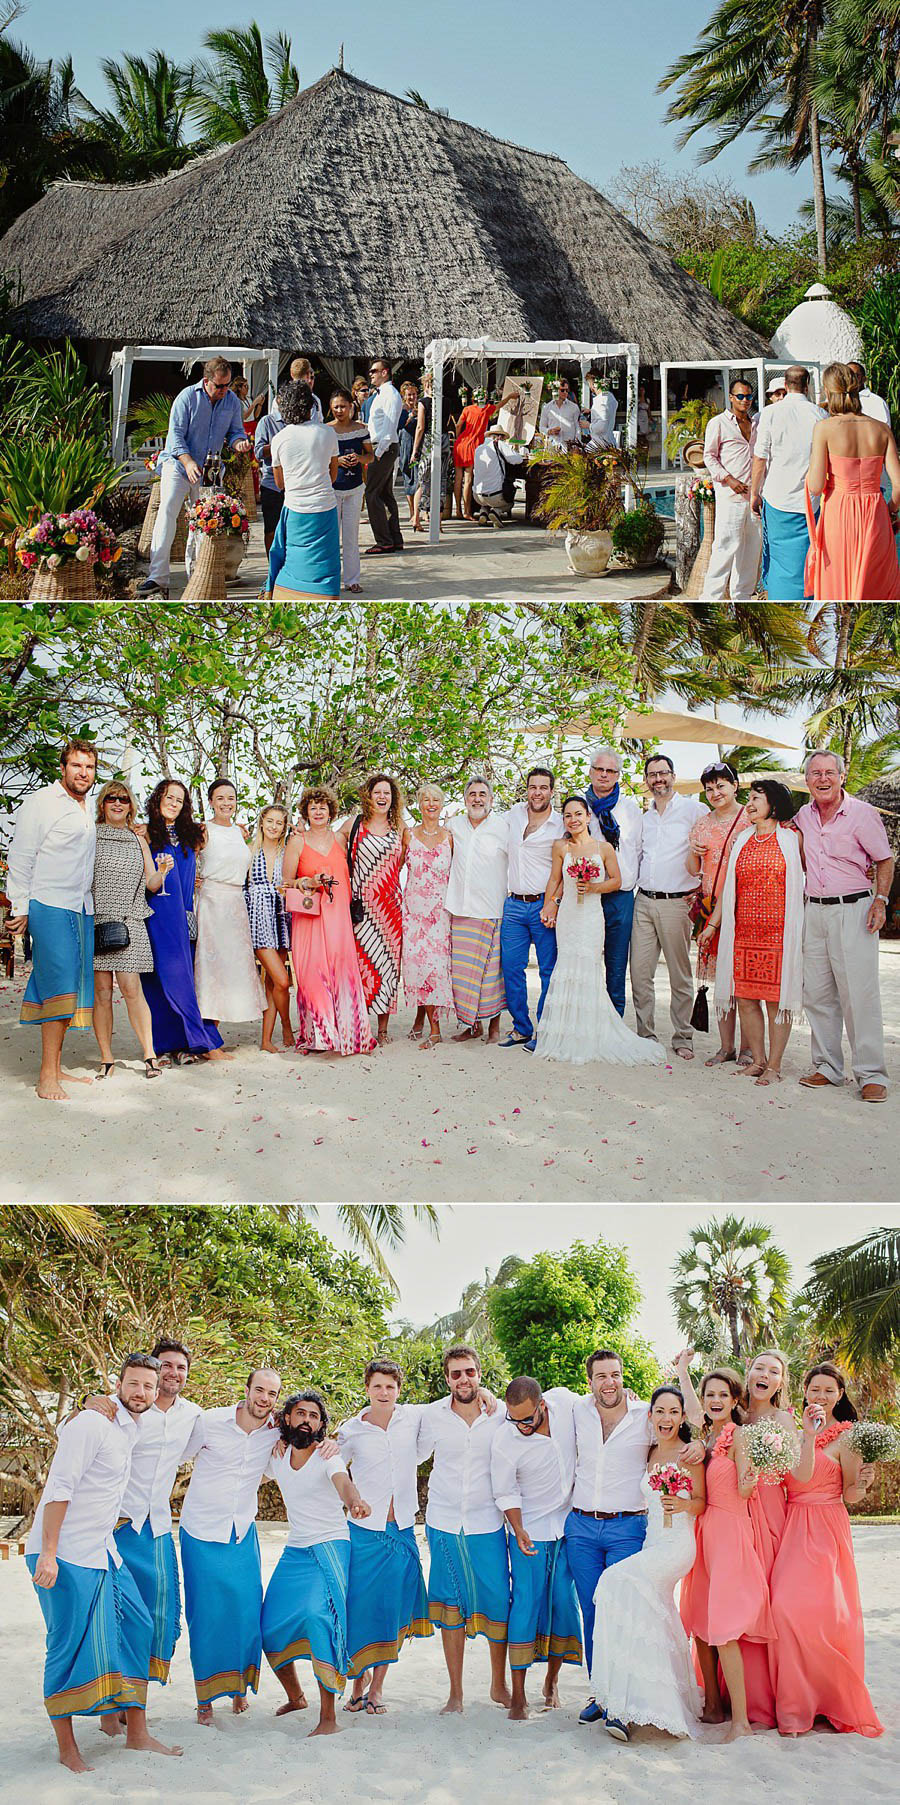 zanzibar_tanzania_kenya_malindi_beach_multicultural_wedding_photography_mamalovebabamarry_0018.jpg